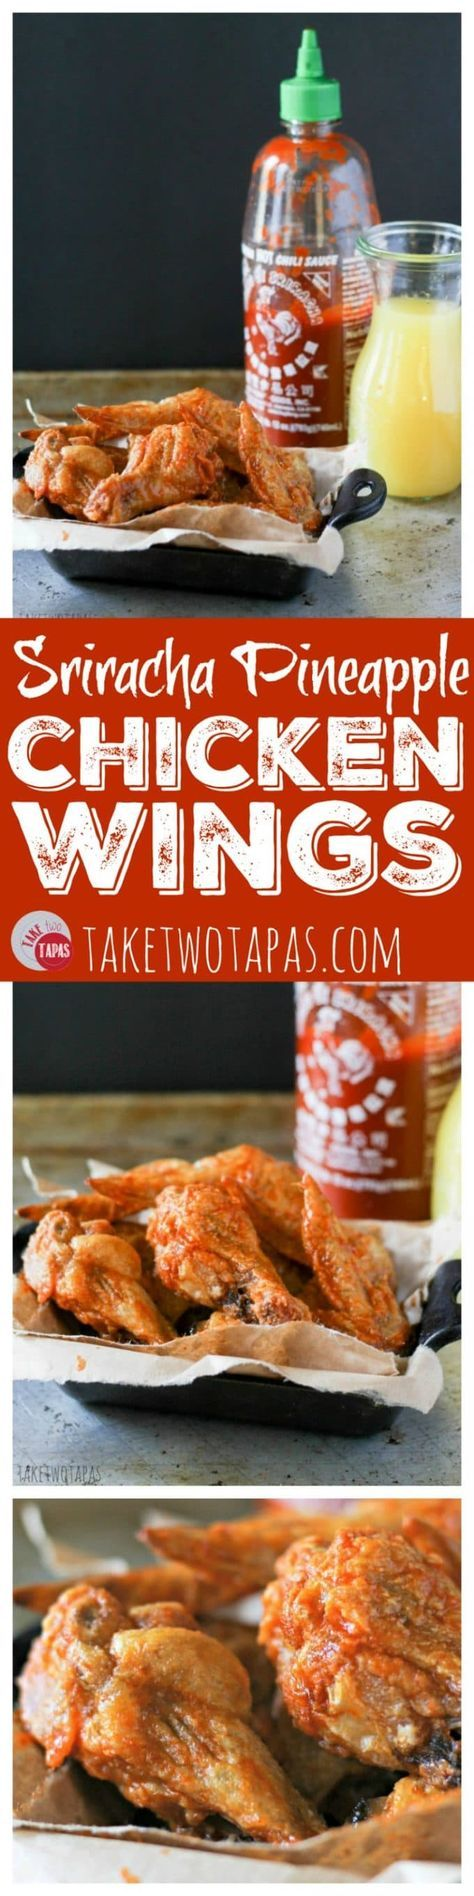 You can't always find Paleo-friendly foods at a tailgate party, so make these Sriracha Pineapple chicken wings and be the hero! Keep with your Paleo goals and chow down on some sweet and spicy wings! Sriracha Pineapple Chicken Wing Recipe   Take Two Tapas